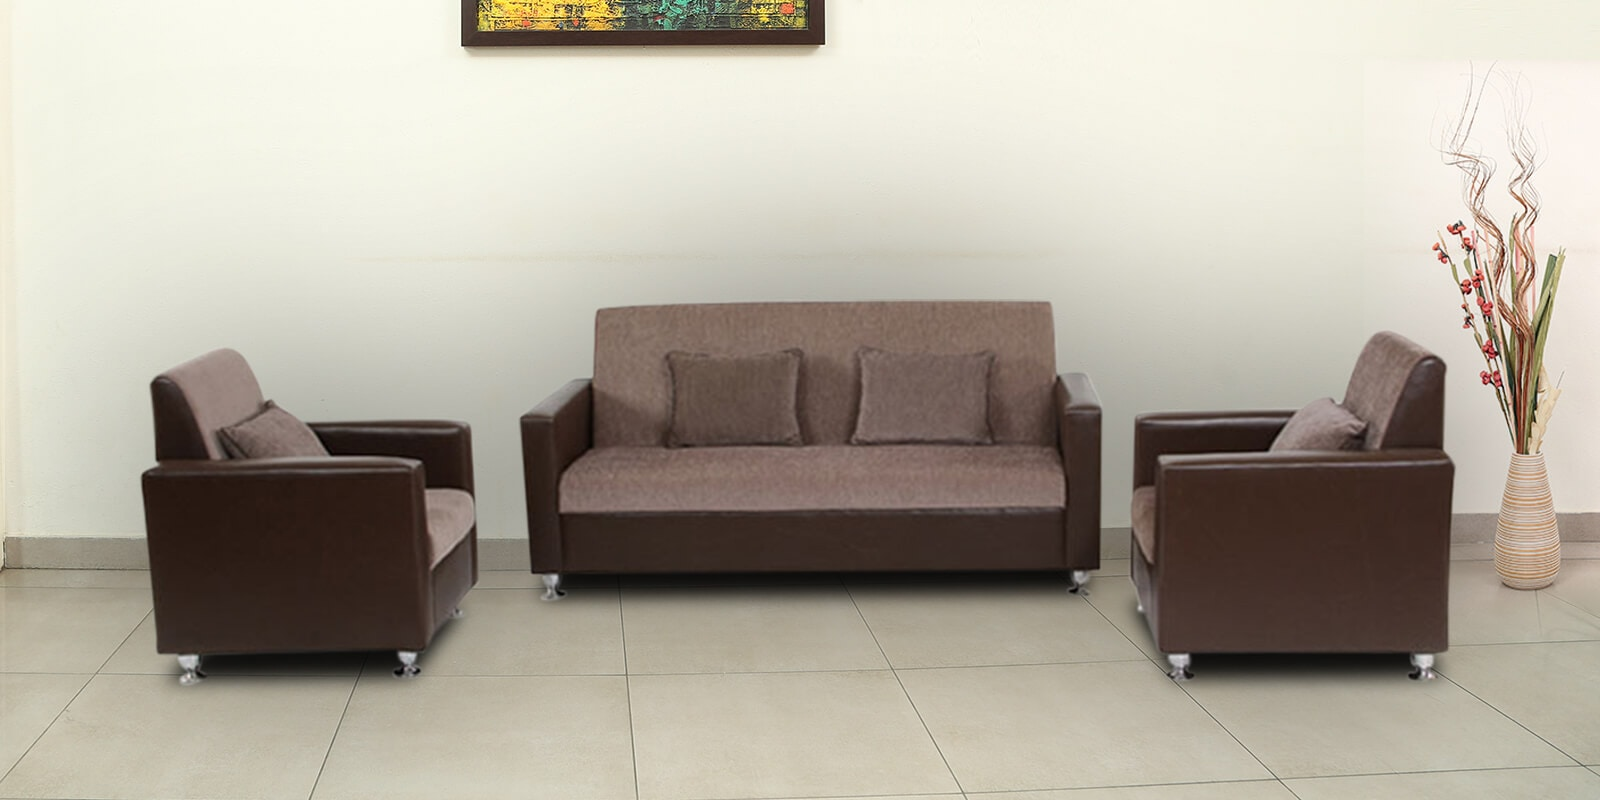 Buy Browntulip Sofa Set 3 1 1 Seater By Arra Online Classic Sofa Sets Sofa Sets Furniture Pepperfry Product